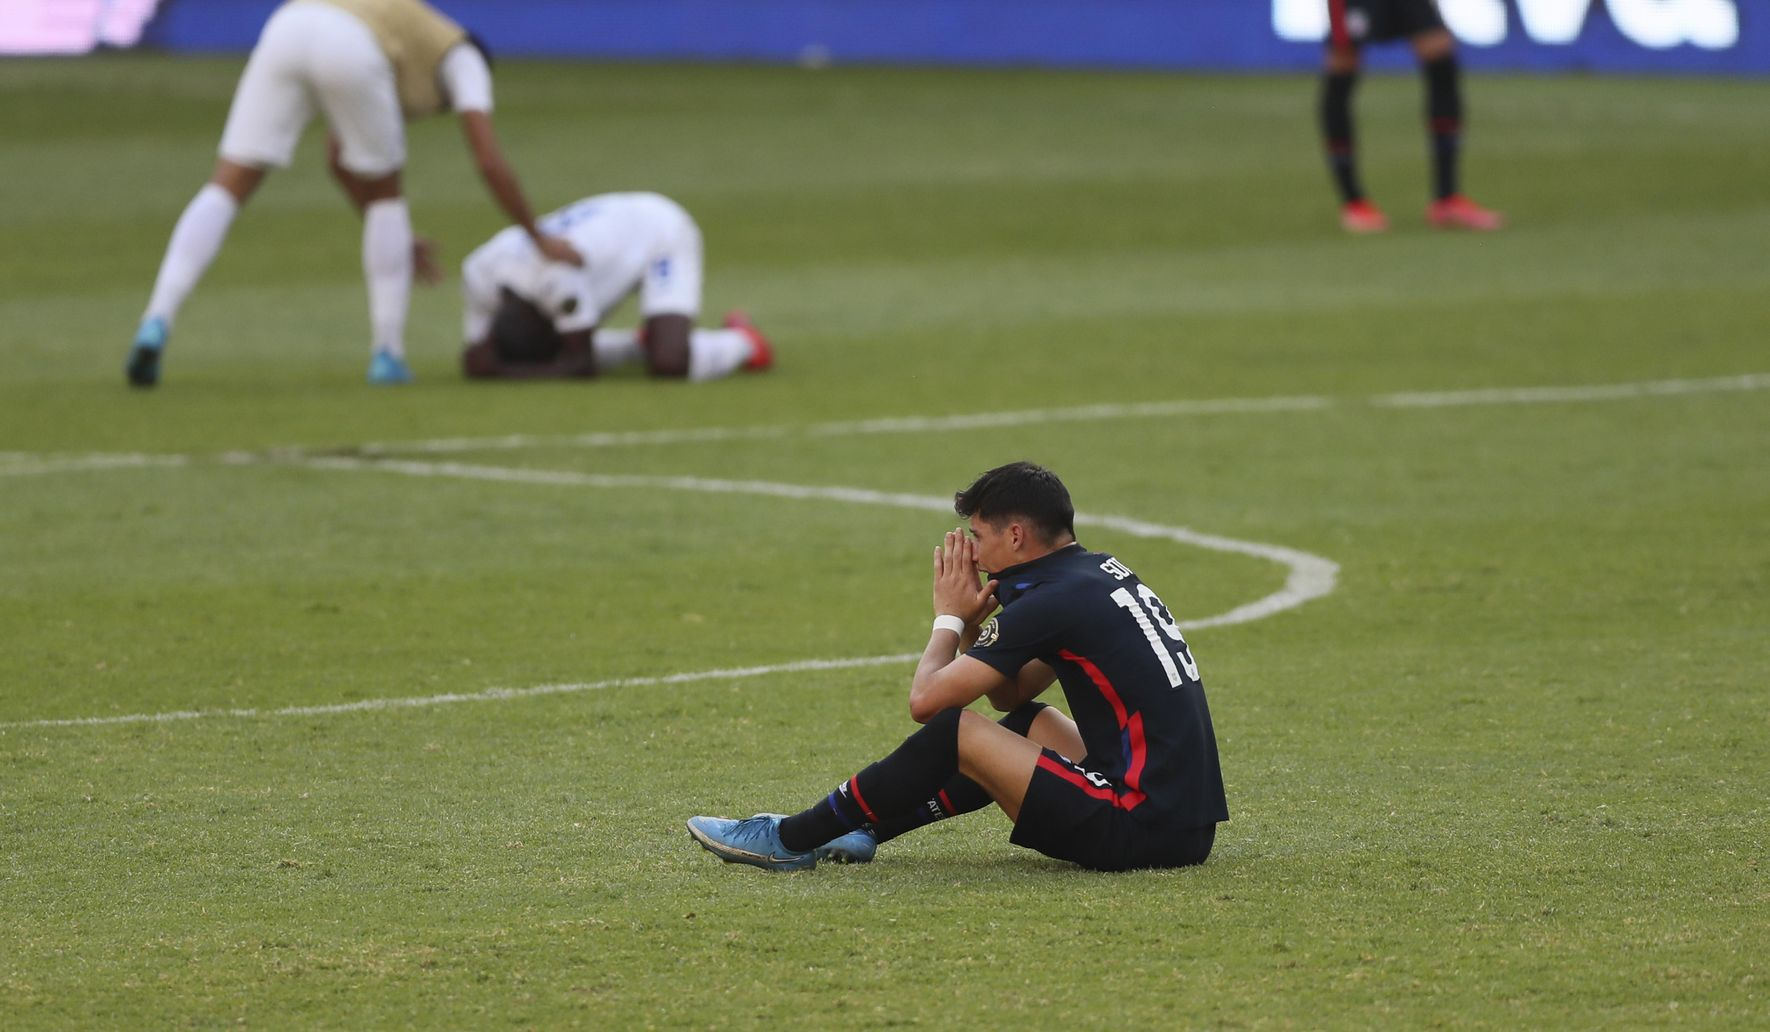 Mexico_concacaf_soccer_68872_c0-458-5472-3648_s1770x1032